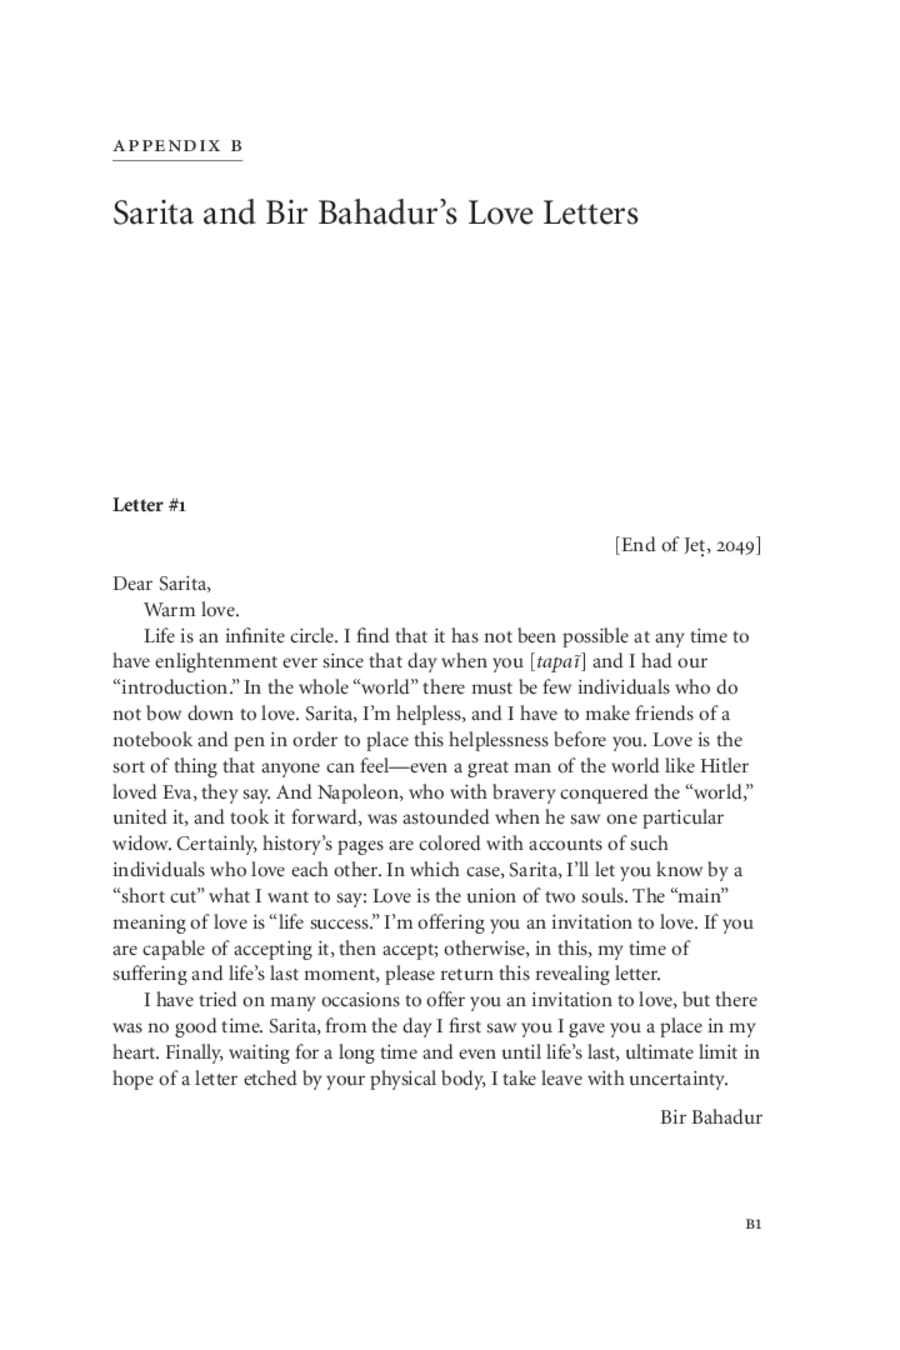 love letters examples letter template how to write a letter for him 23494 | love letters 01